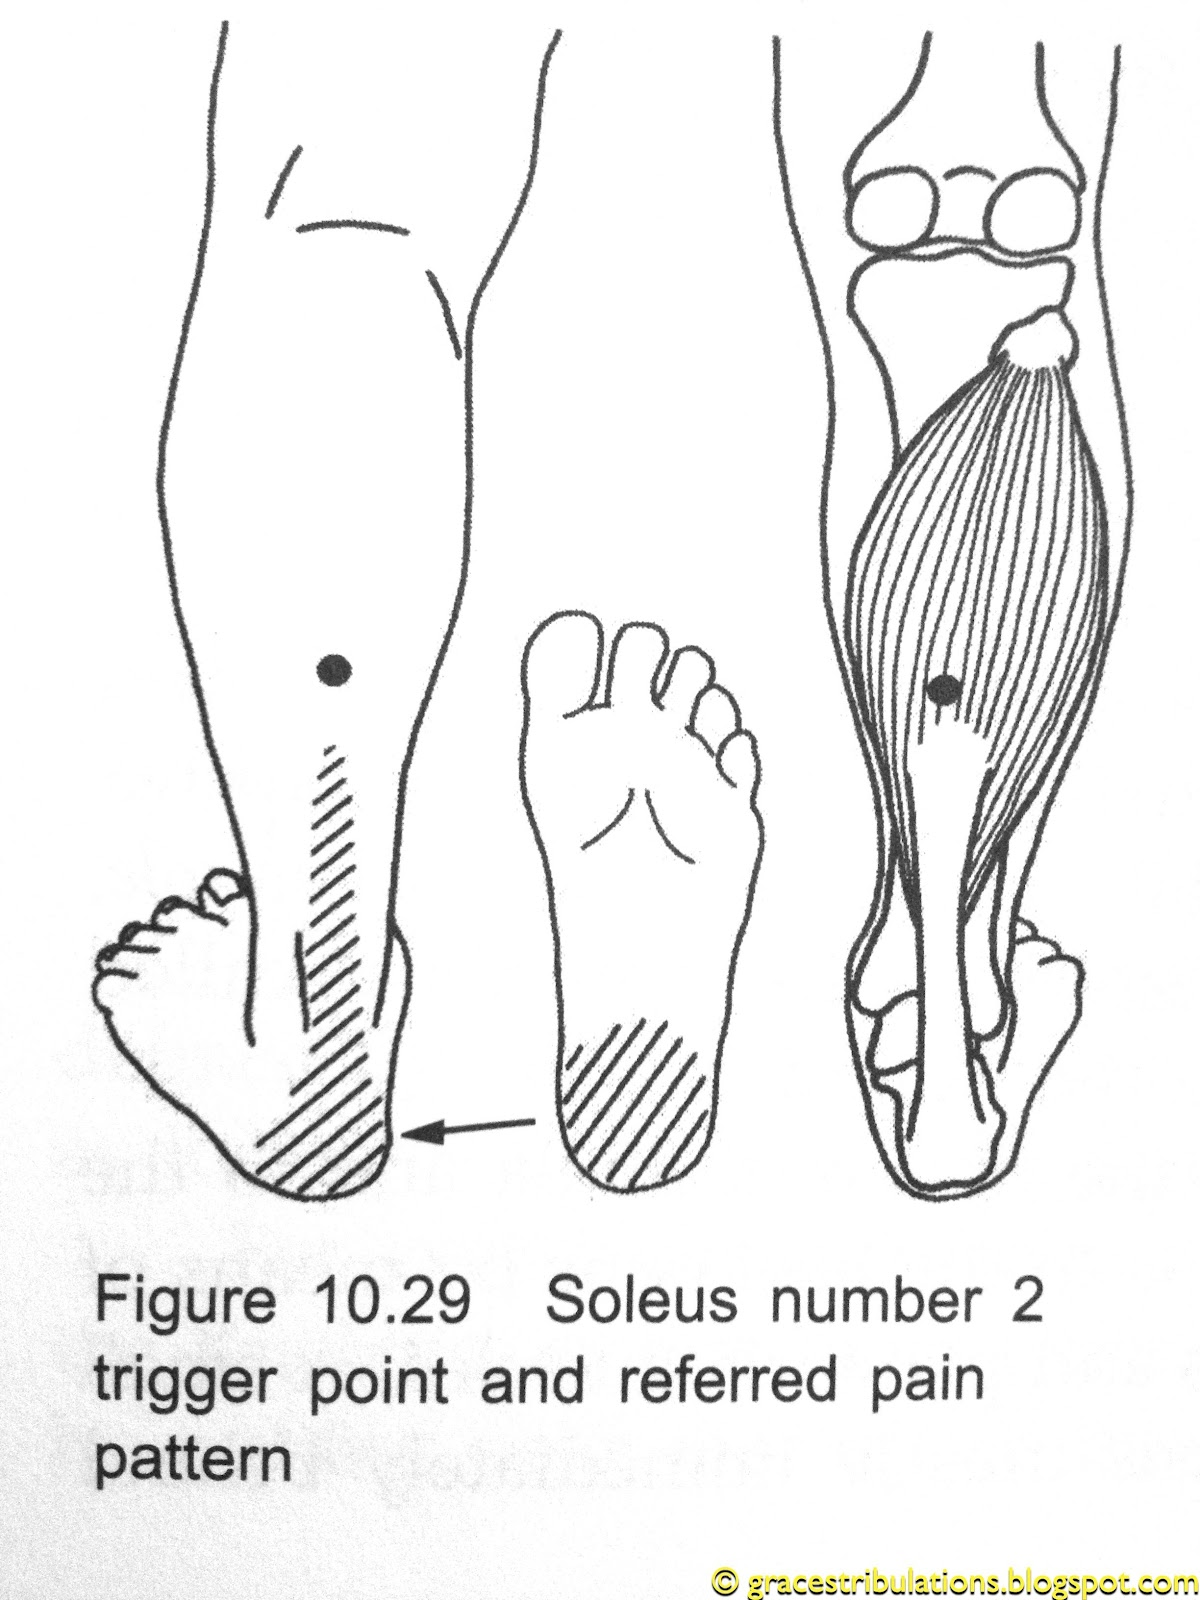 Grace's Tri-bulations: Trigger Point Plantar Fasciitis ...